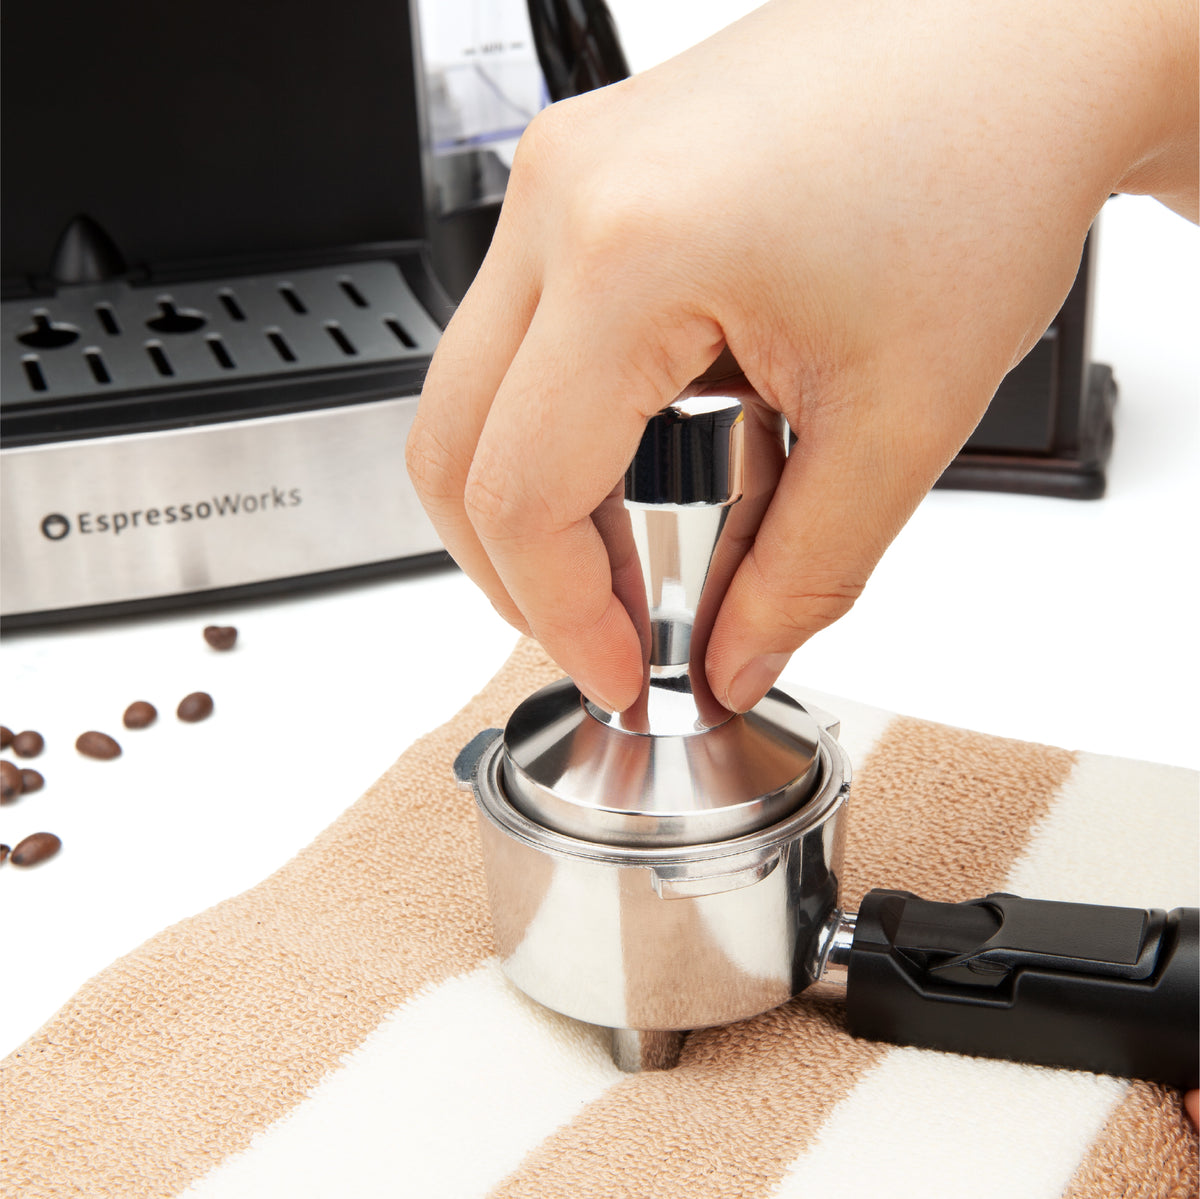 EspressoWorks Espresso Tamper Stainless Steel expertly tamps in coffee grinds to make a puck for a balanced brew